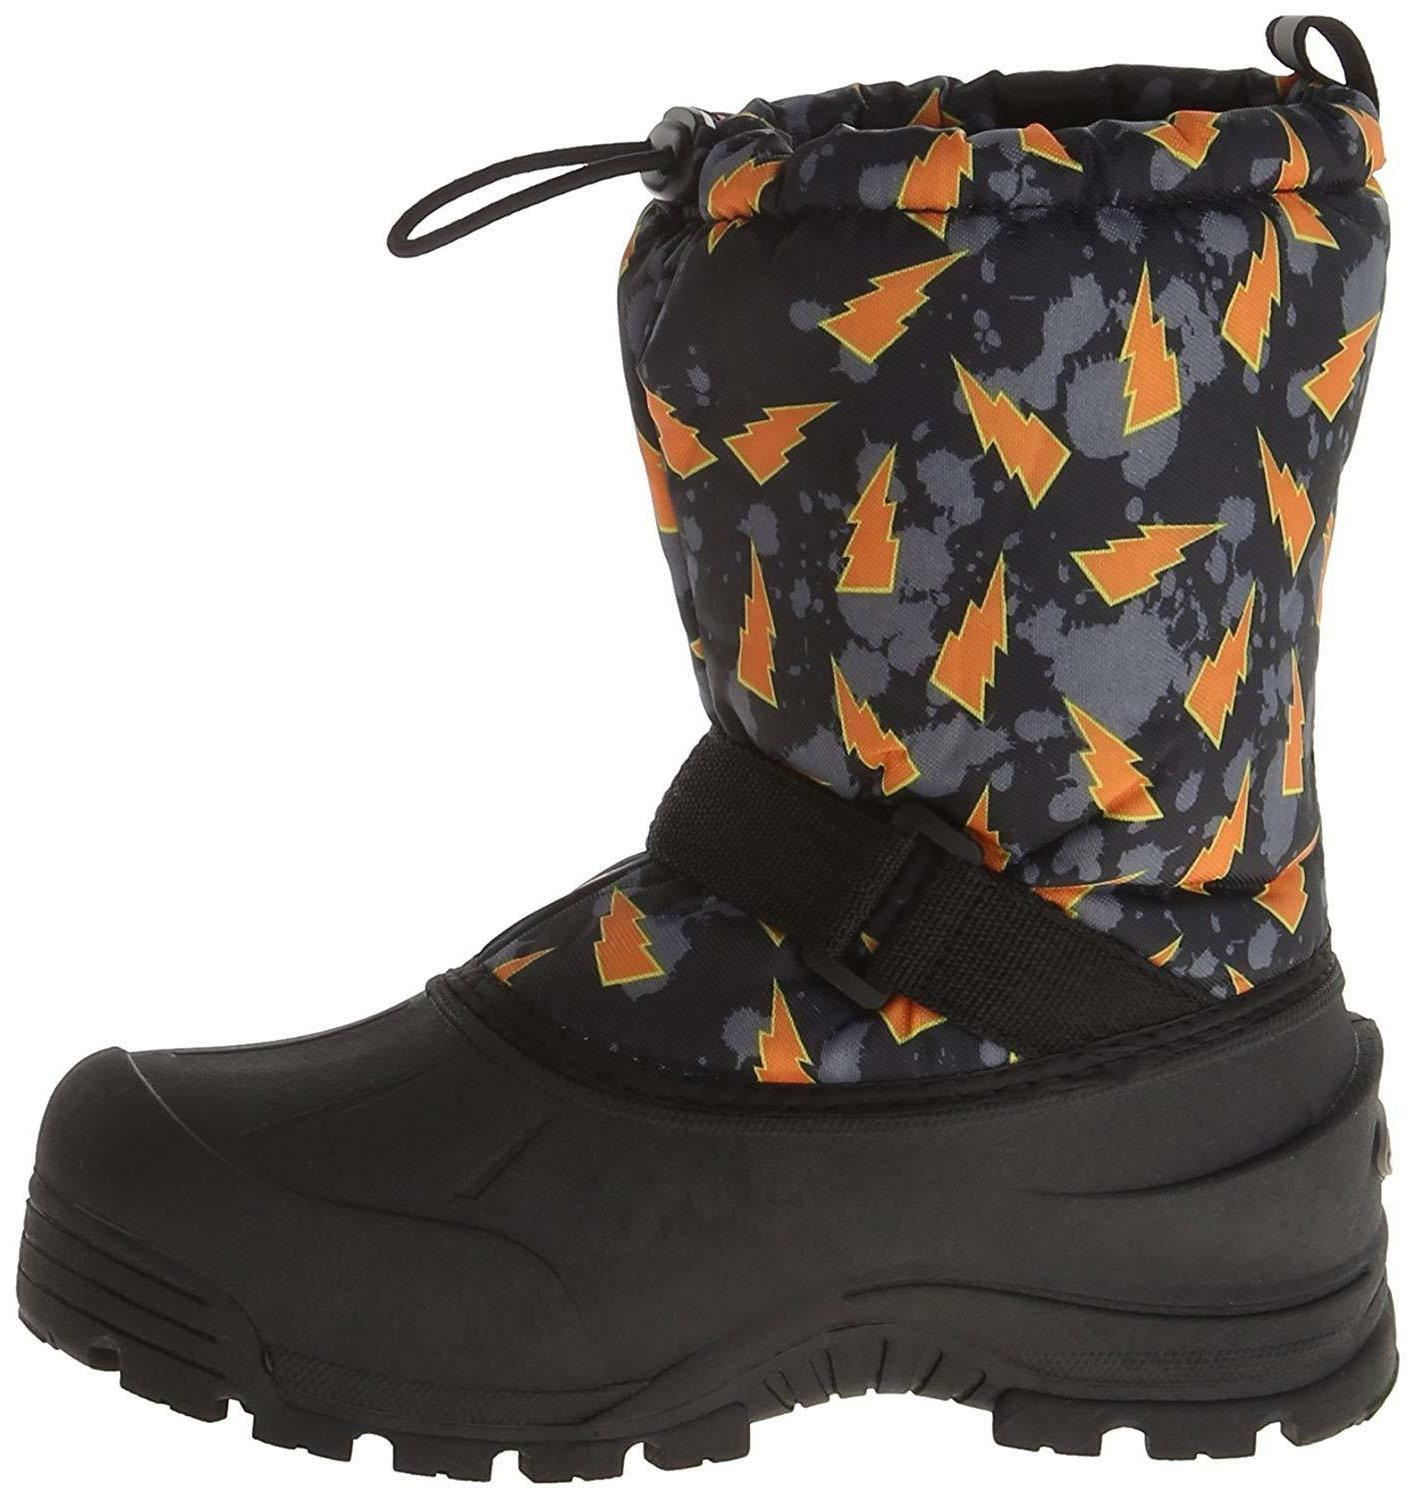 Black/Orange Insulated Winter Snow